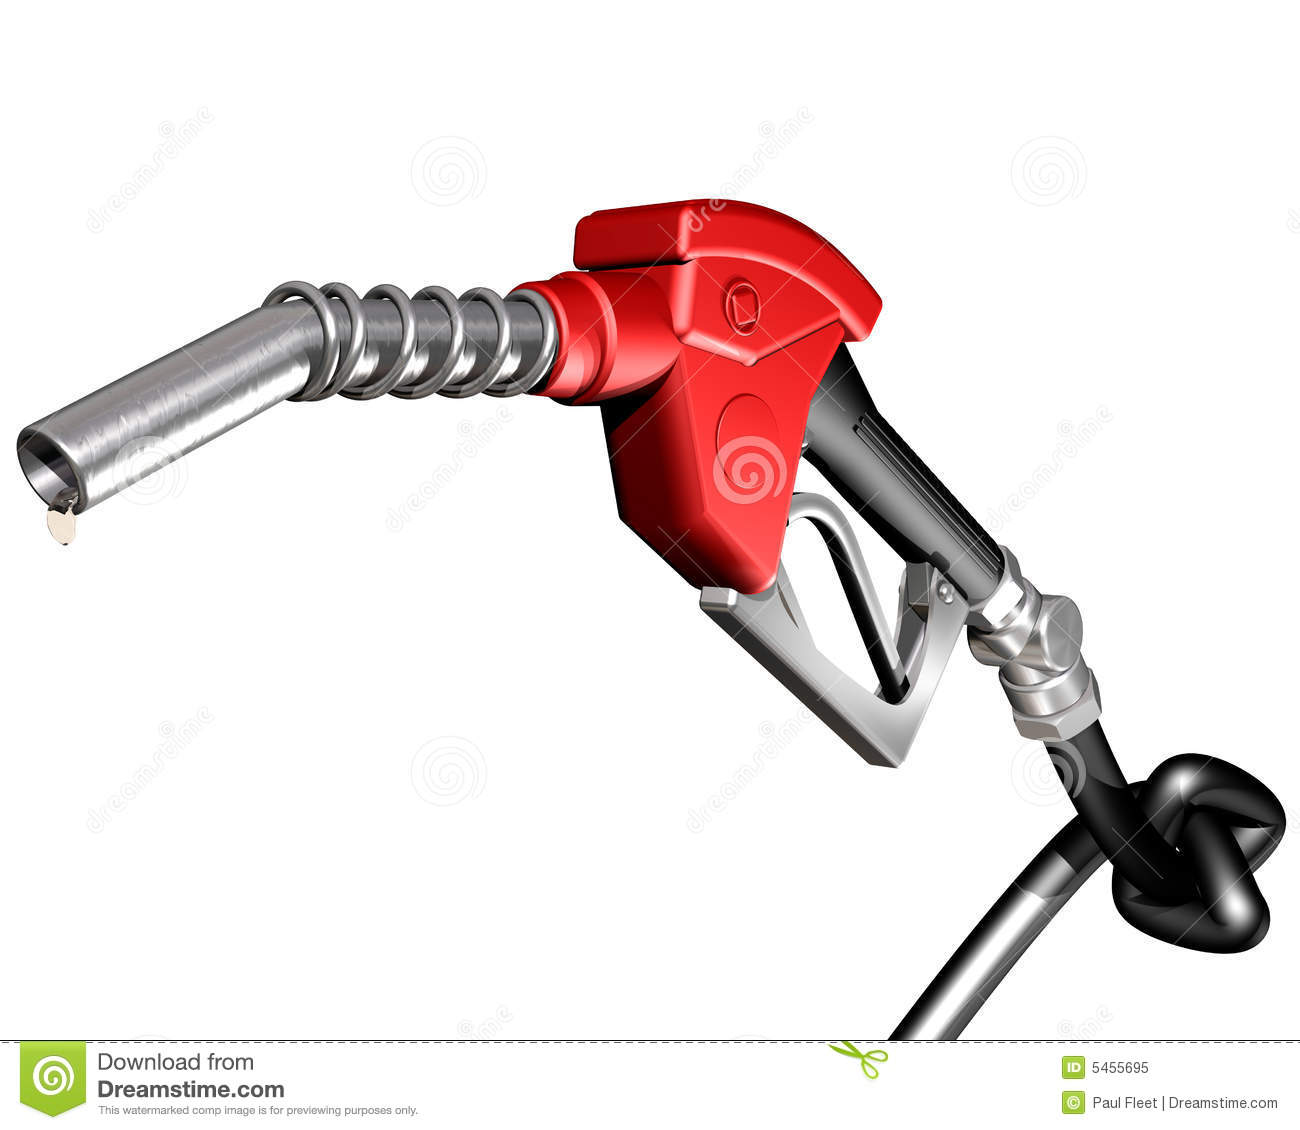 Of A Dripping Gasoline Pump Nozzle And Hose With A Knot Tied In It